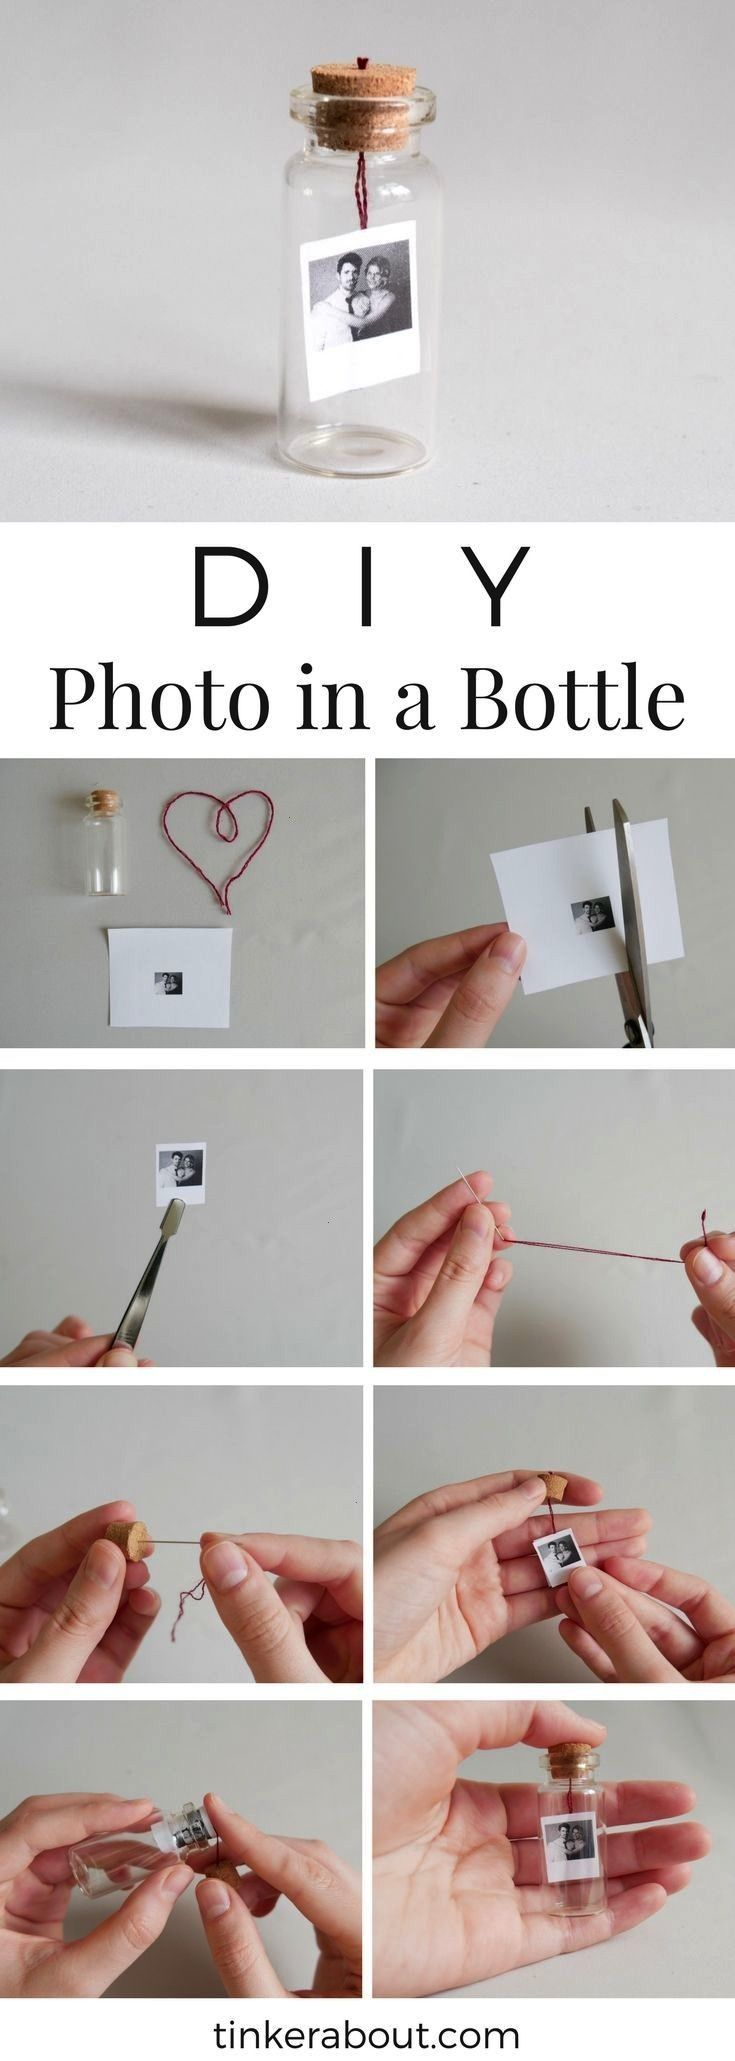 Tiny PhotoMessage in a Bottle as Valentines Day Gift Idea DIY Tiny PhotoMessage in a Bottle as Valentines Day Gift Idea DIY Tiny PhotoMessage in a Bottle as Valentines Da...